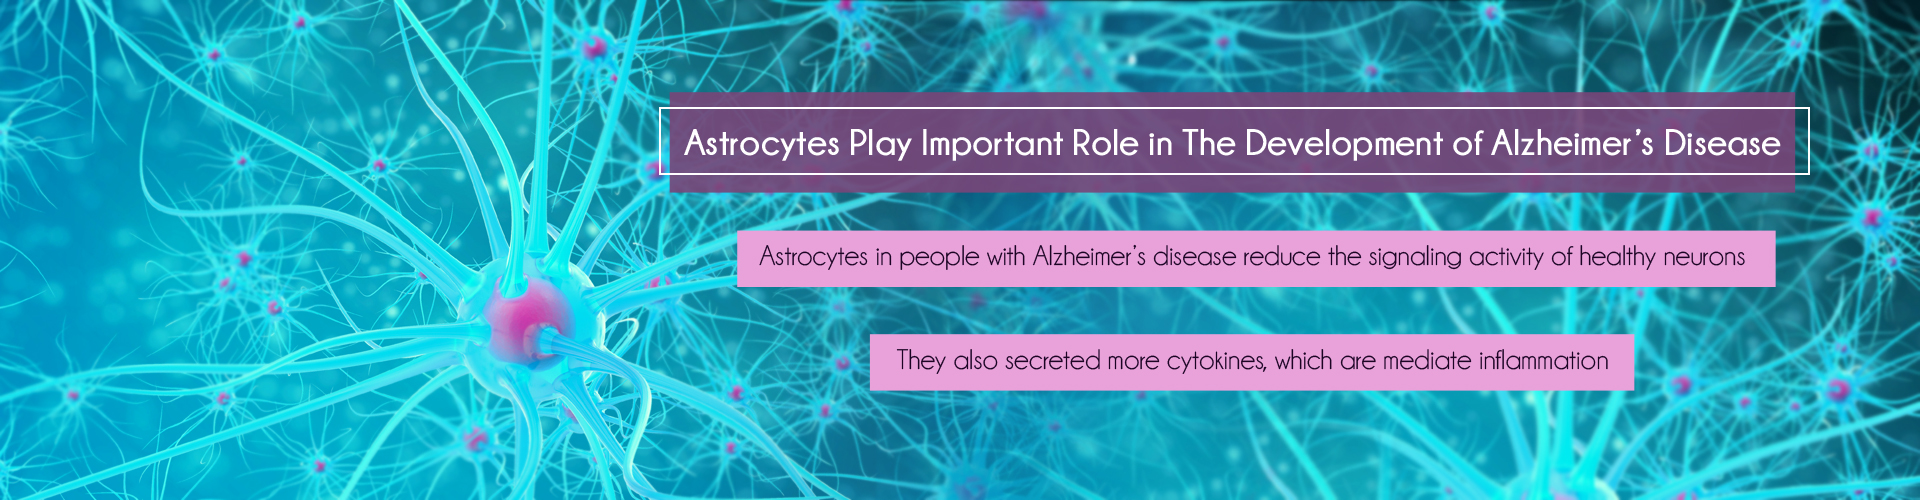 Severe Astrocytes Pathology Involve in Alzheimer's Disease